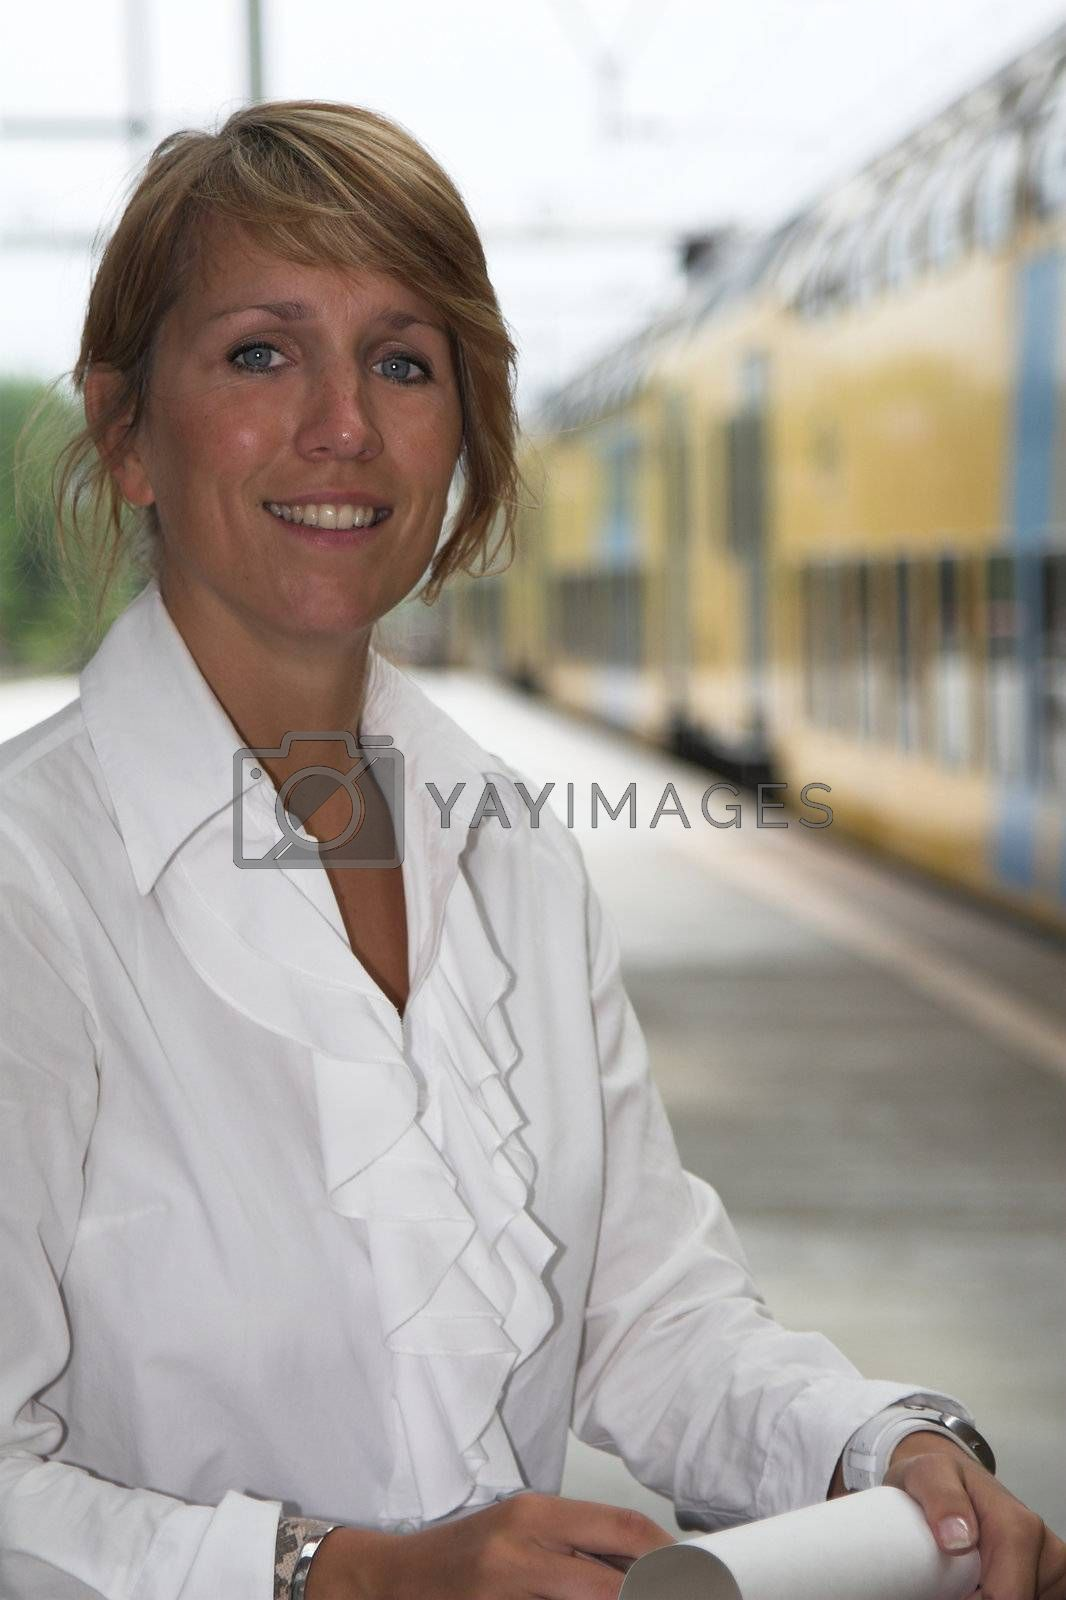 Pretty businesswoman waiting for the train to arrive